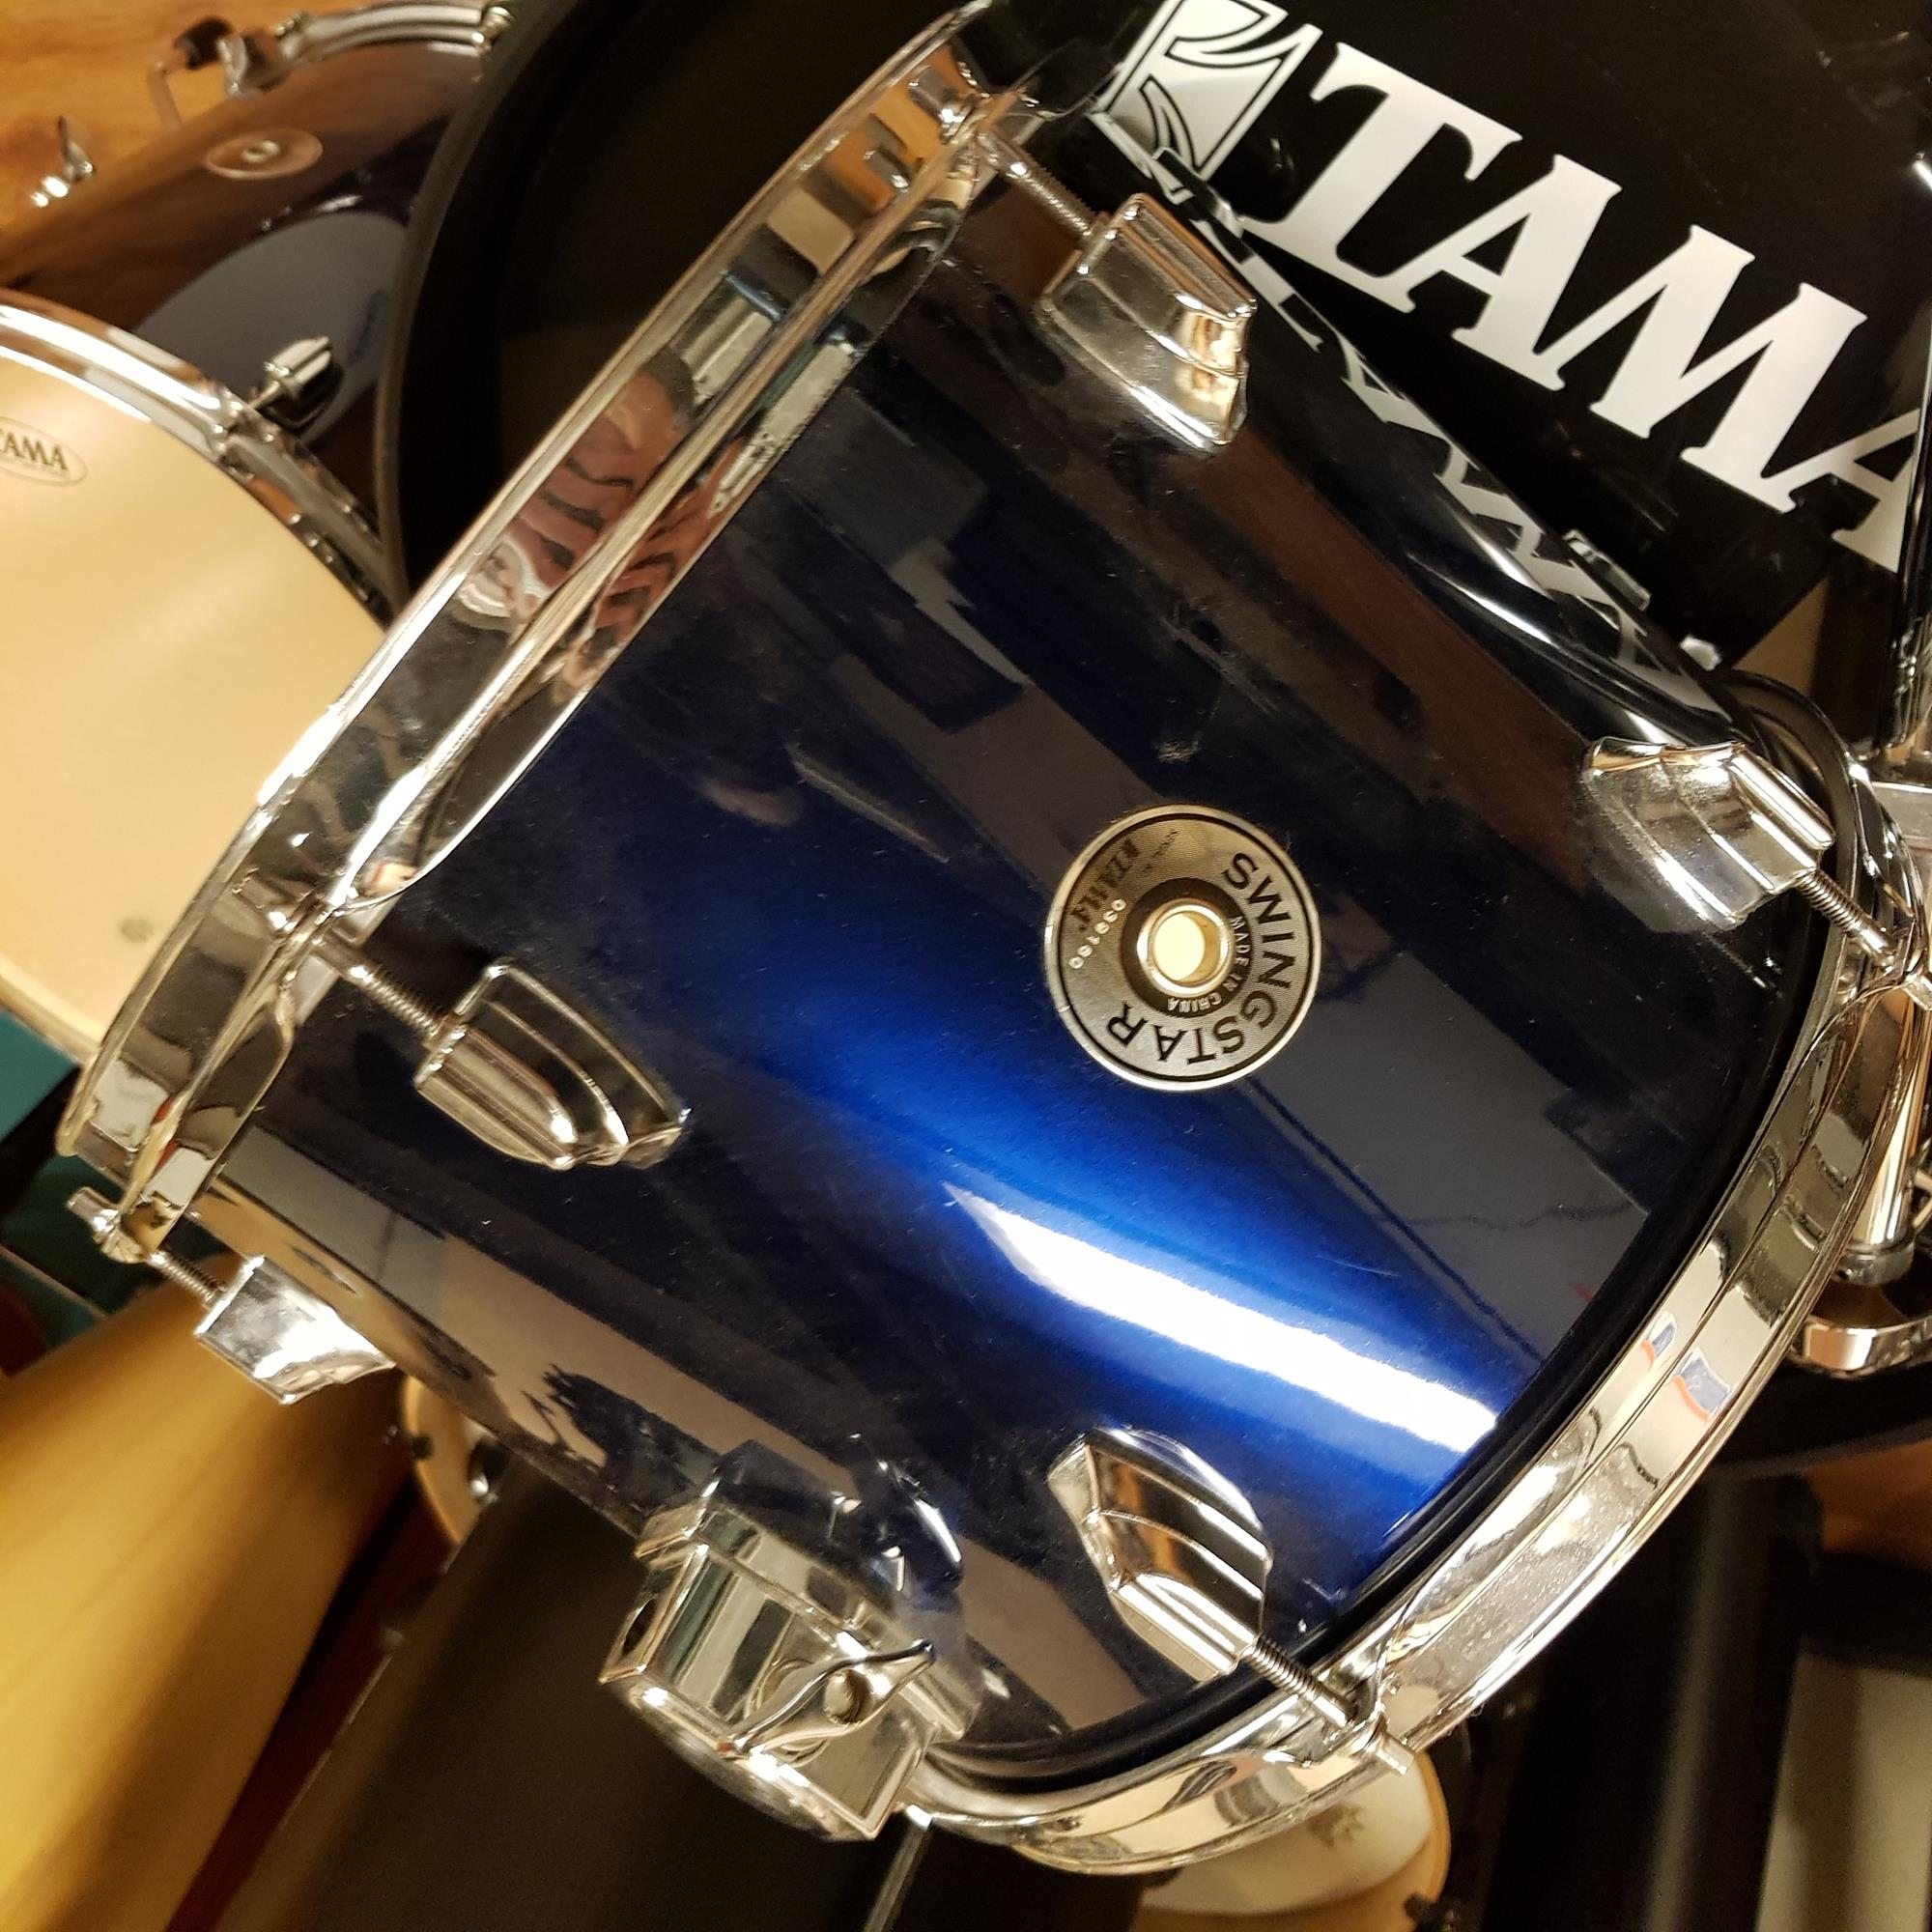 TAMA-SWINGSTAR-DRUM-SET-COMPLETE-WITH-CYMBALS-sku-1610652685764